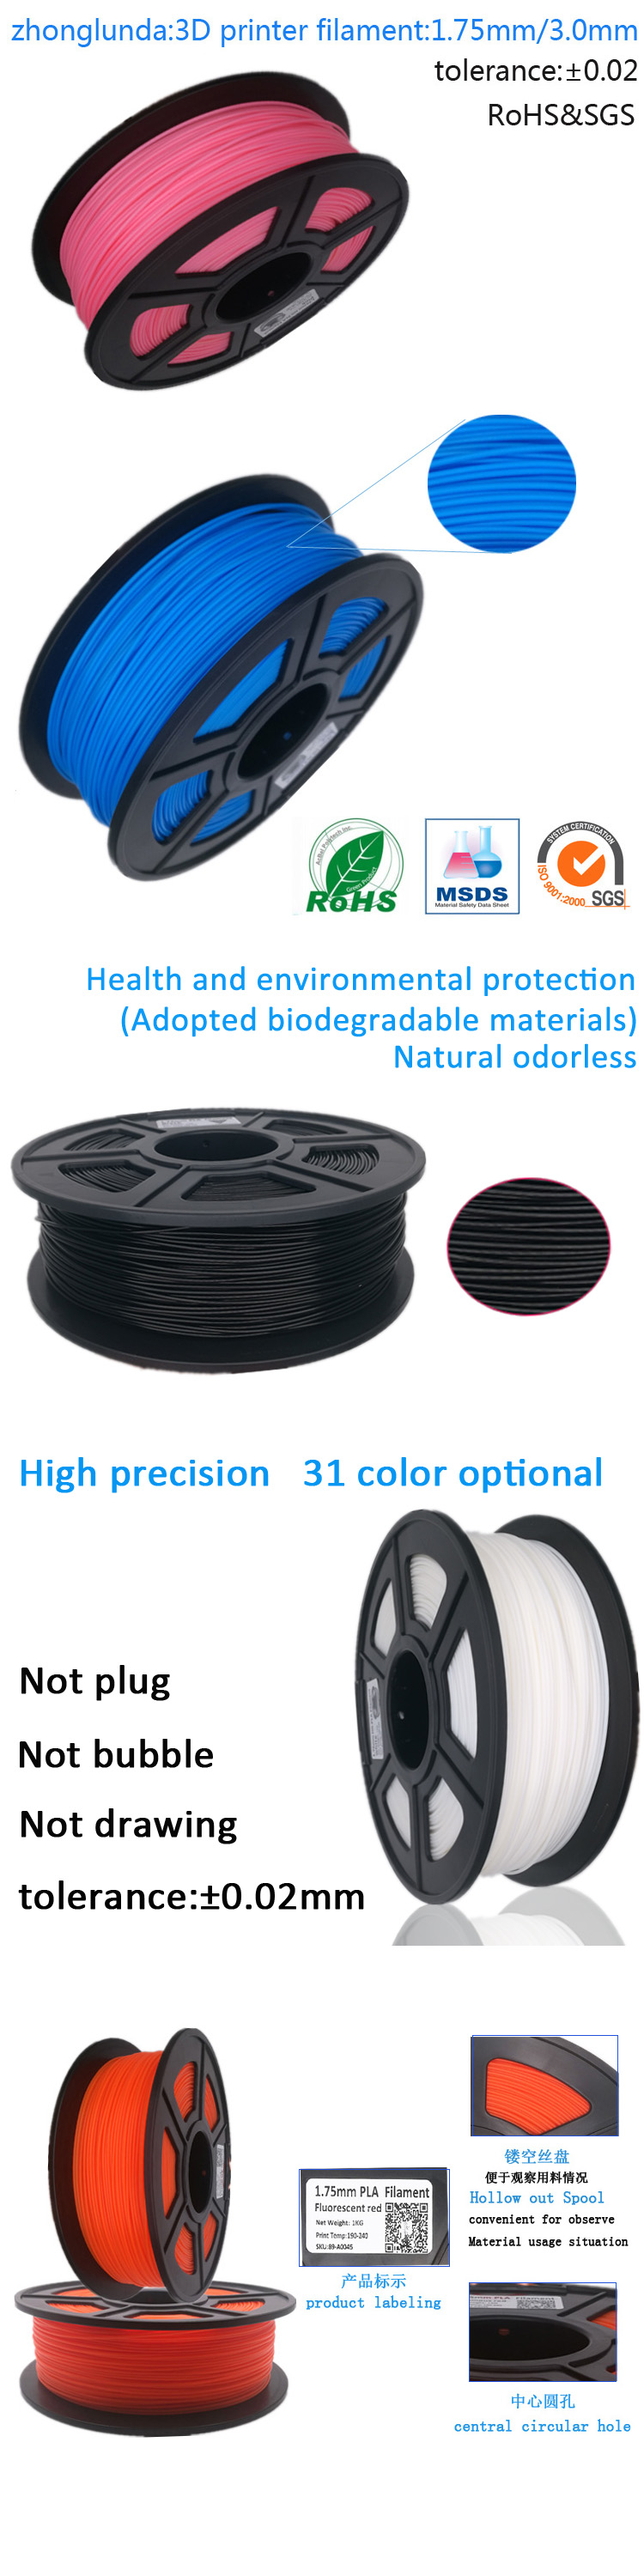 Eco-friendly Carbon fiber PLA 3D printing filament 1.75mm and 3D printing pen filament